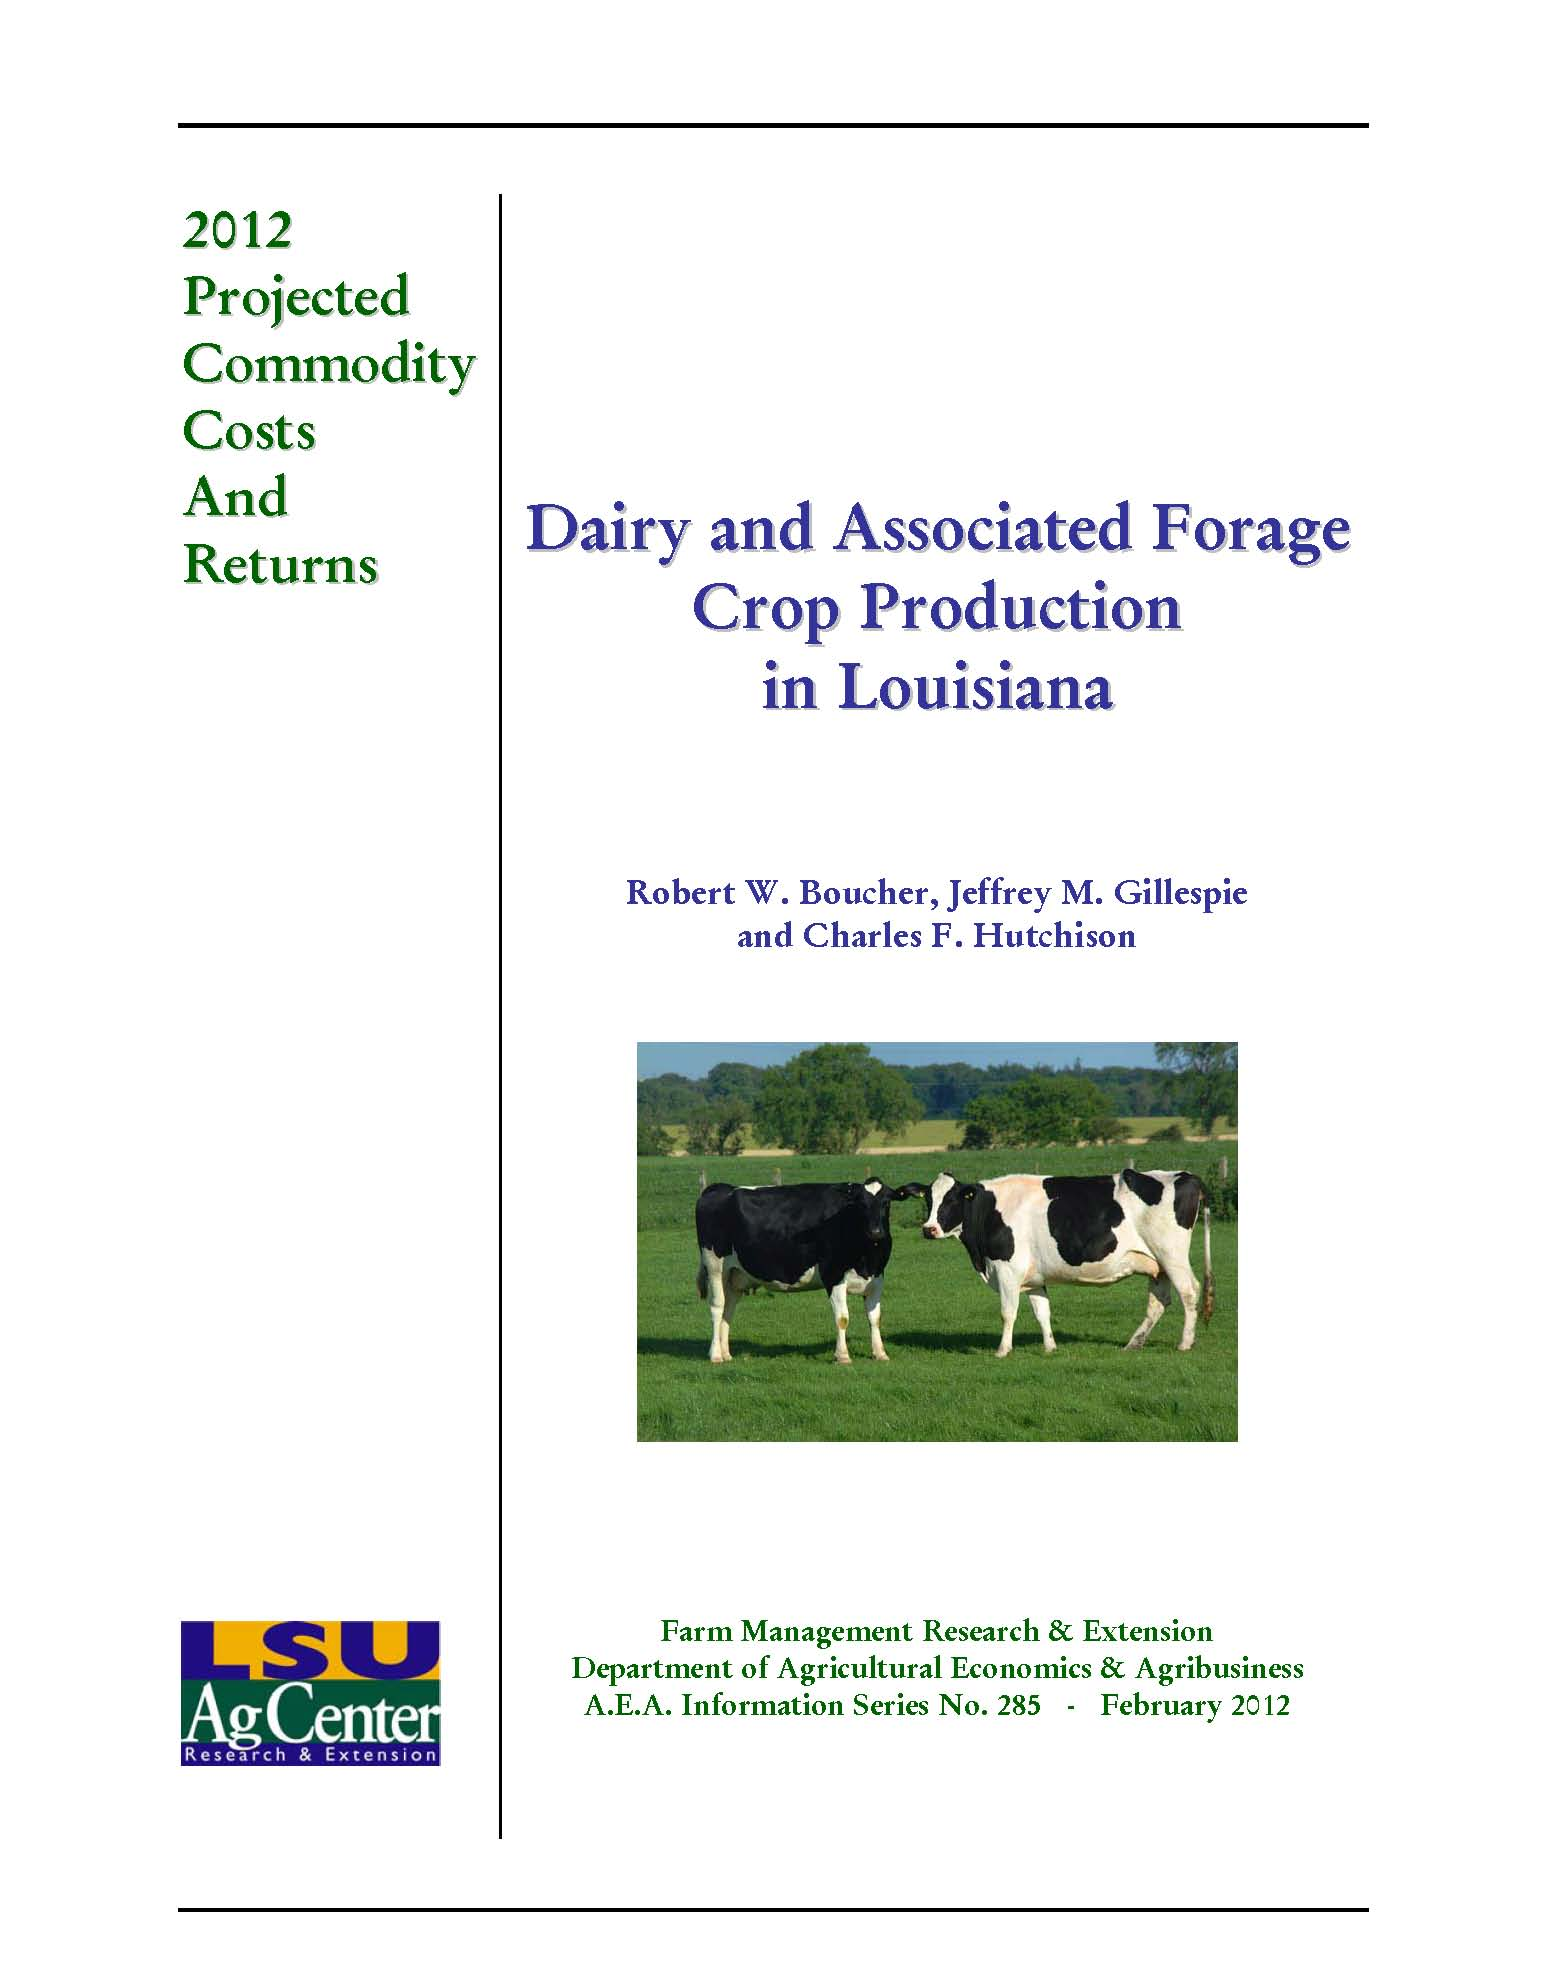 Projected Costs and Returns for Dairy and Associated Forage Crop Production in Louisiana 2012.